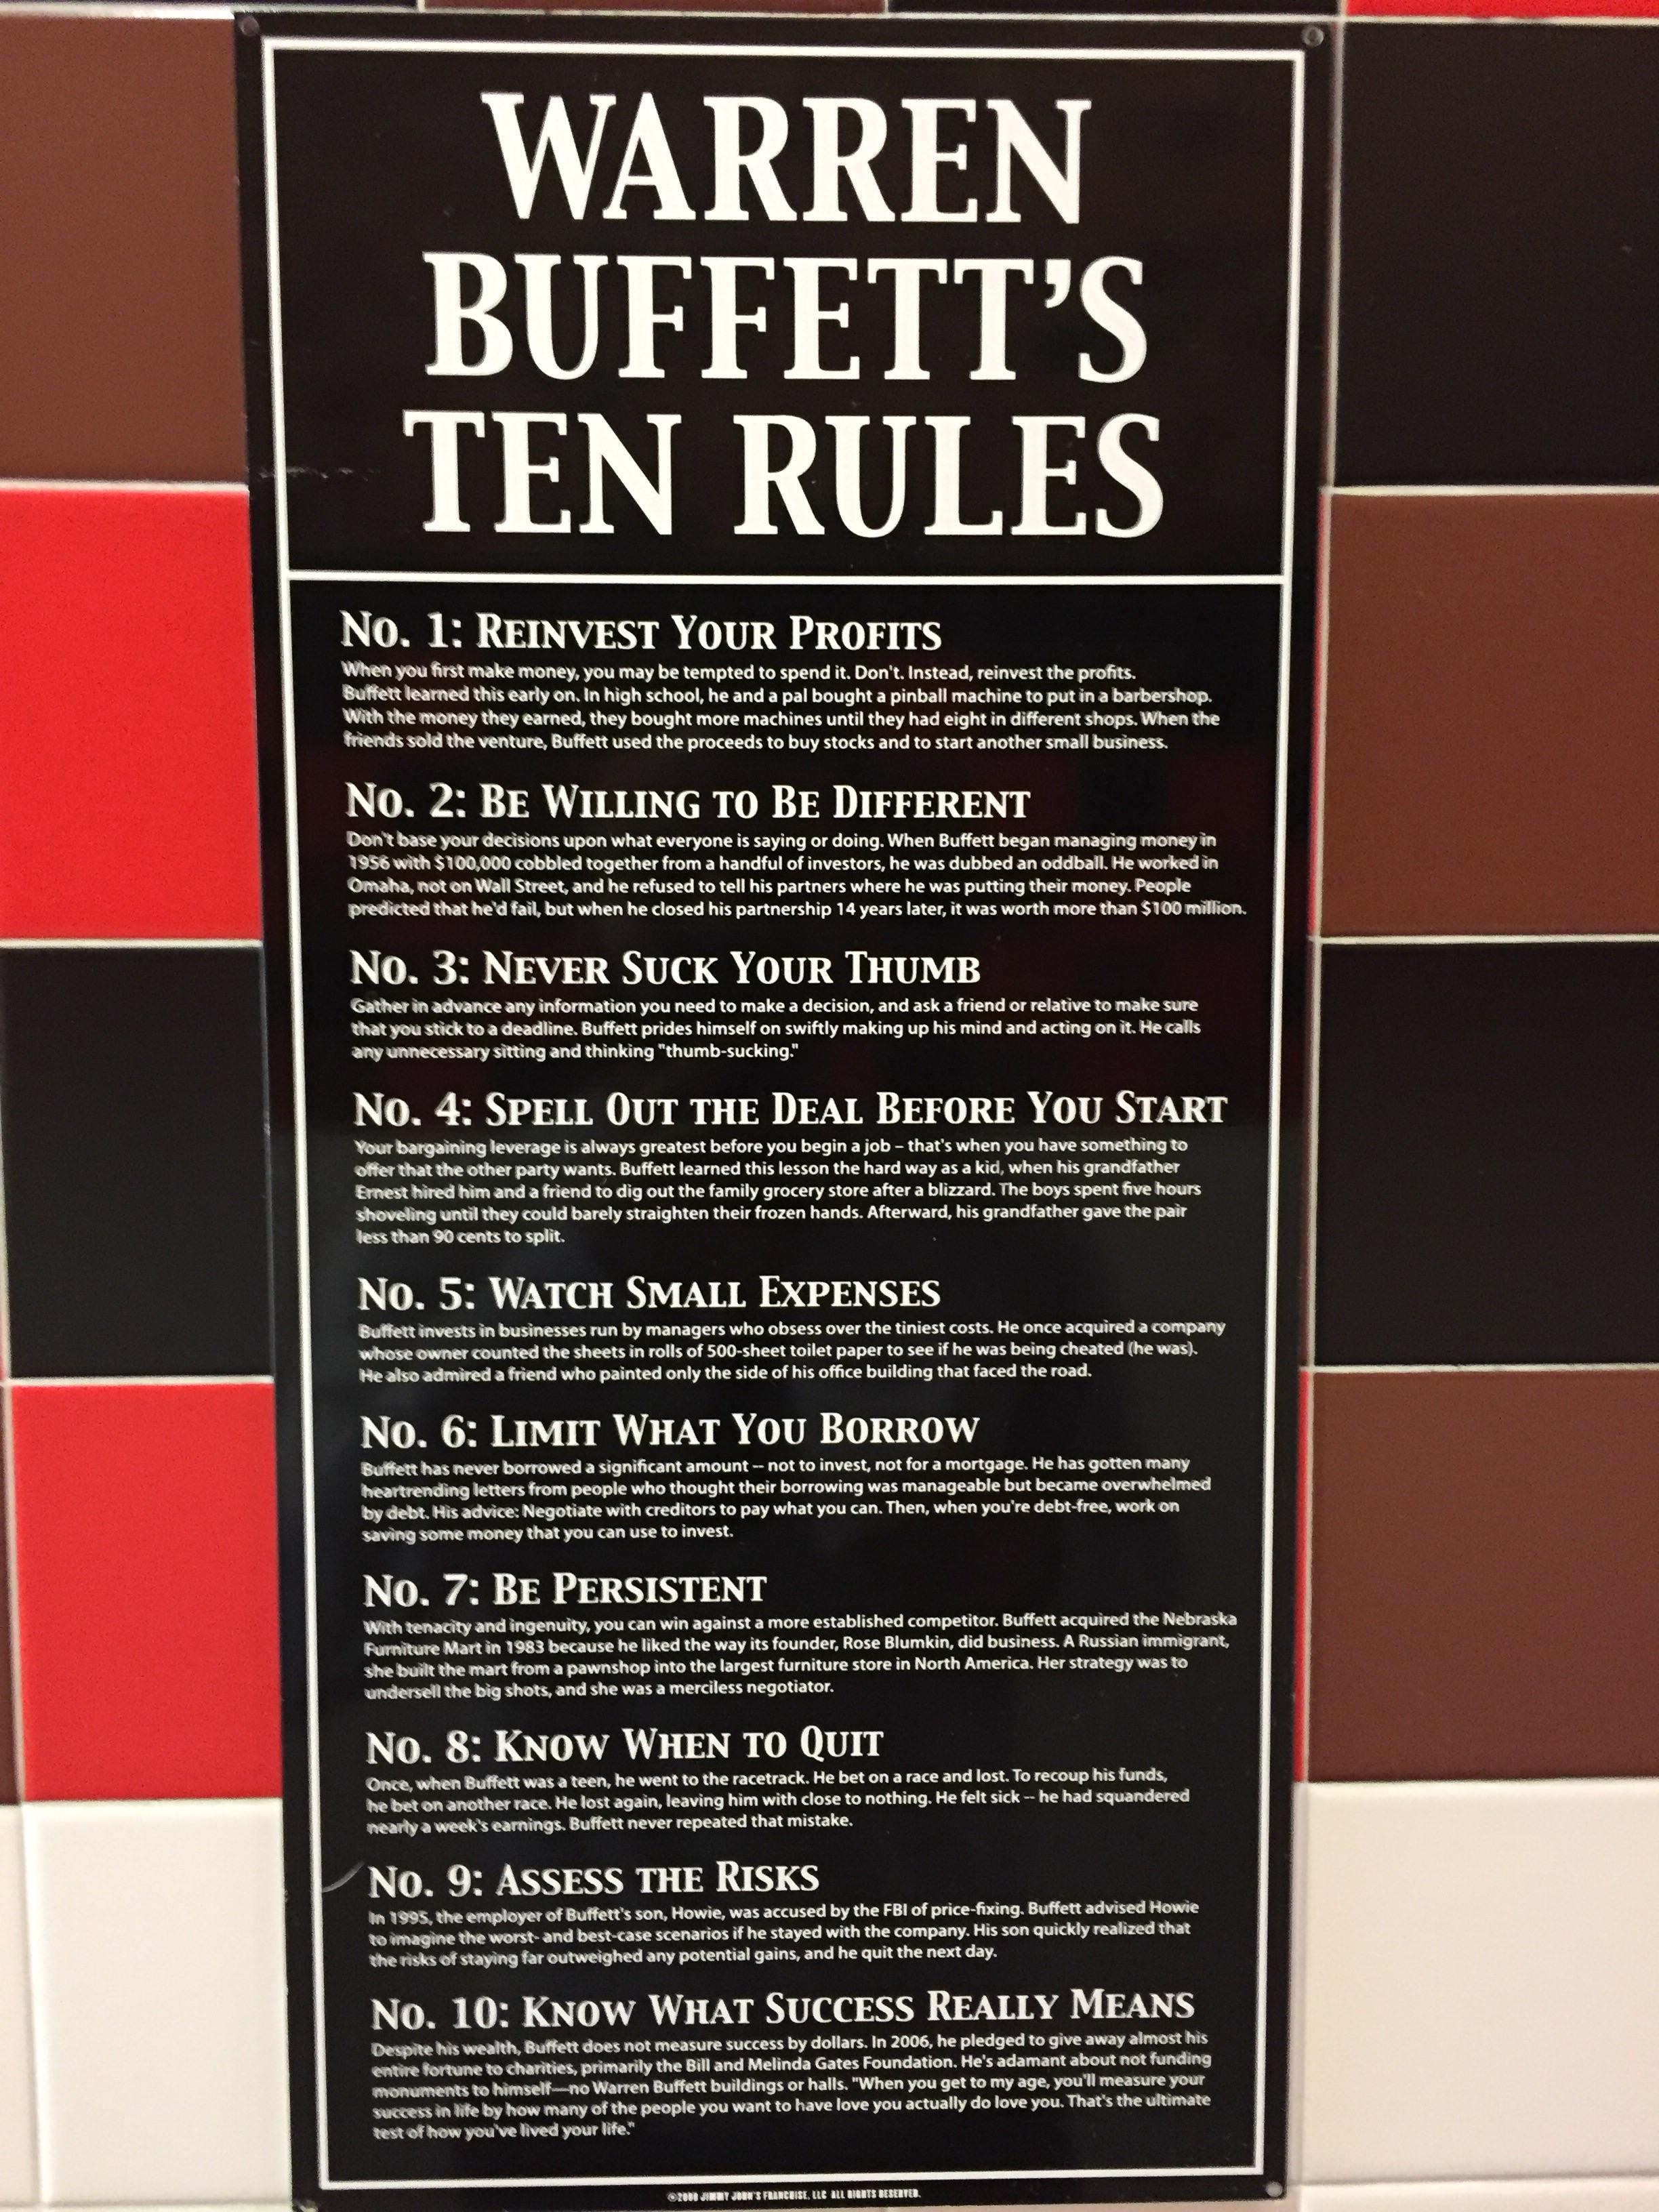 [Image] Spotted this at a Jimmy John's